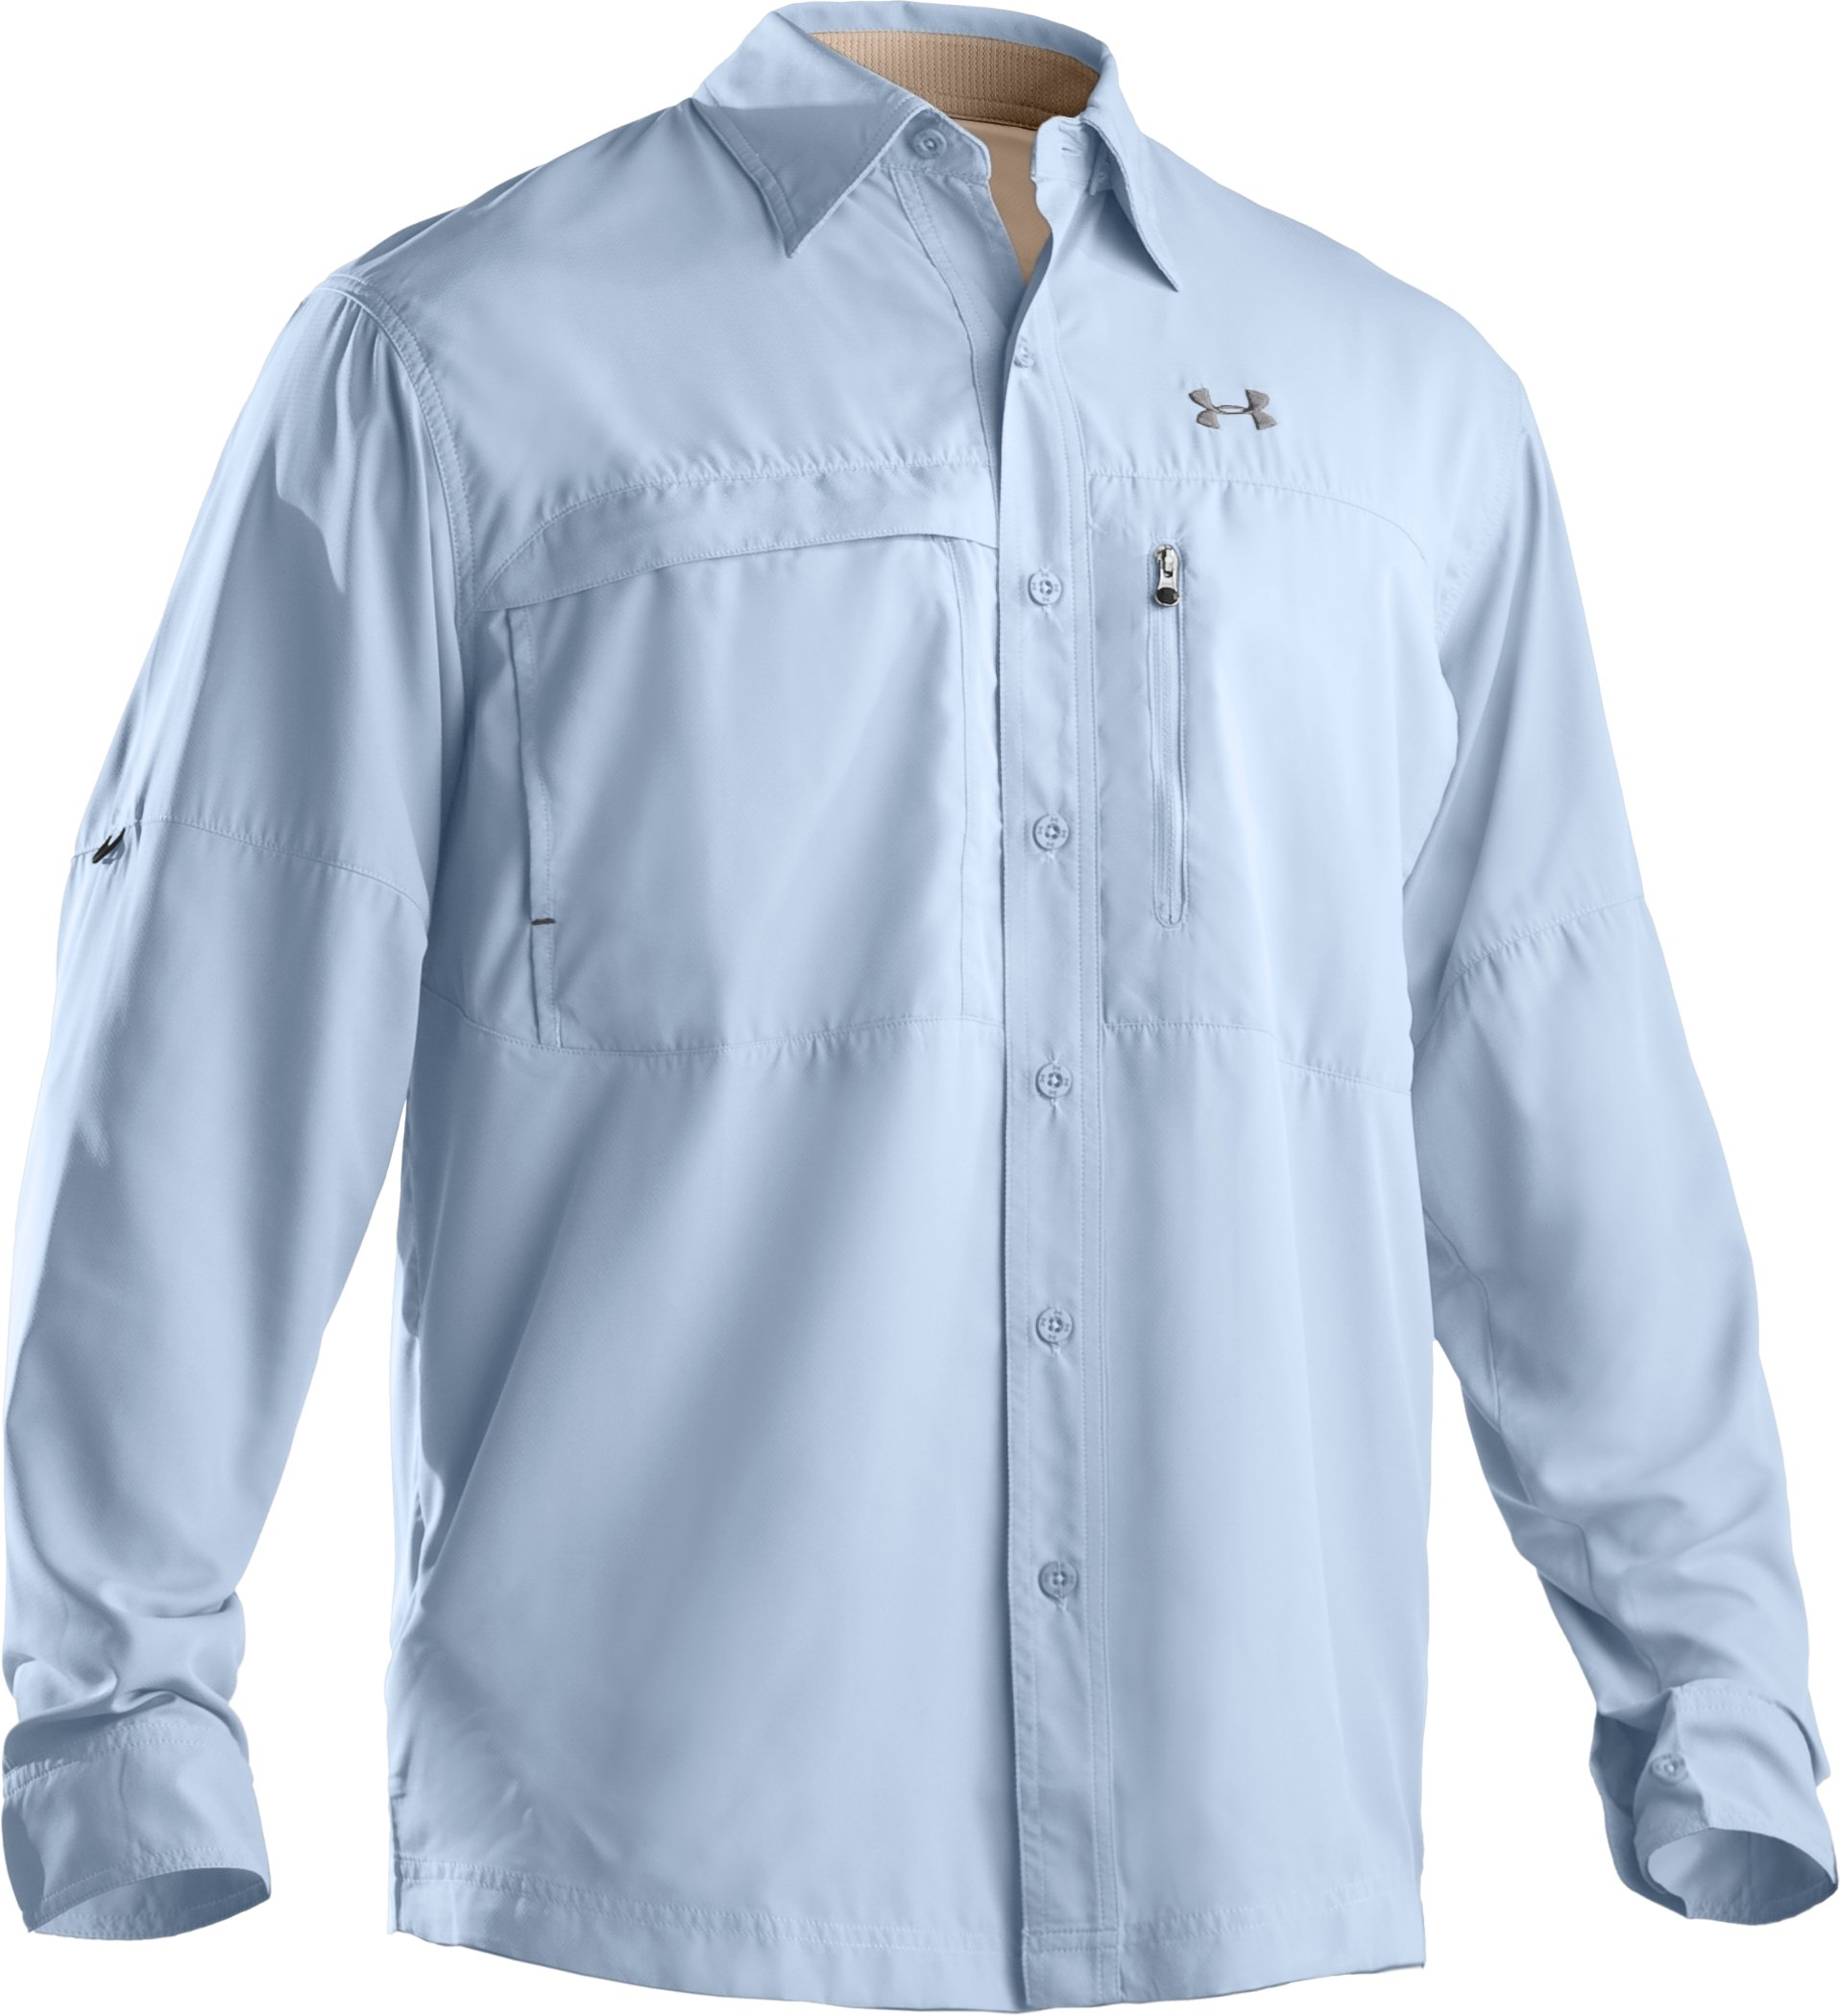 Men's Flats Guide Long Sleeve Shirt, Cirrus Blue